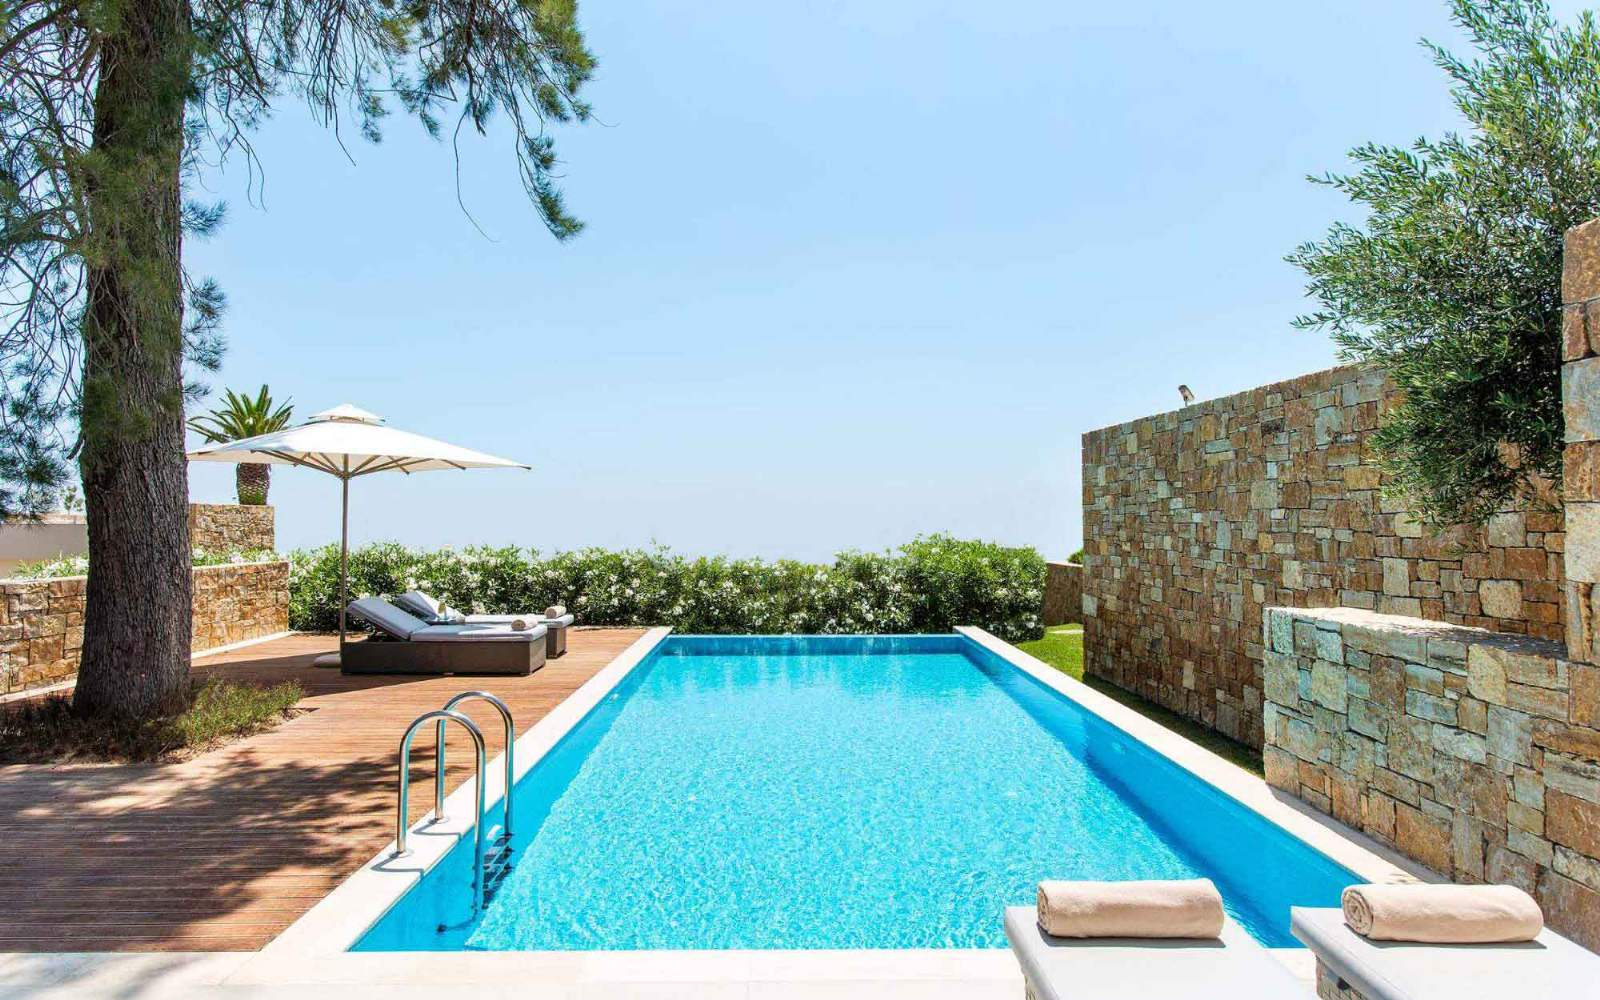 Ikos Olivia - Deluxe one bedroom bungalow with private pool